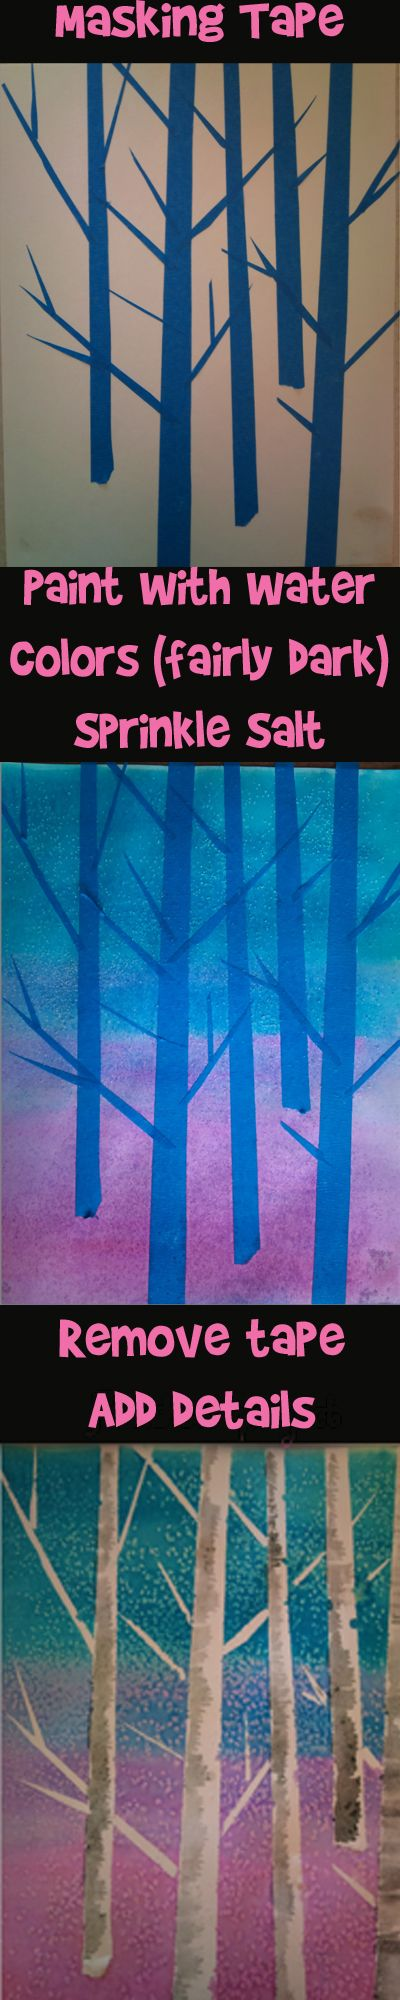 Salt Water Color Project: You only need masking tape, salt, water colors, paper and brushes.  This looks like so much fun!